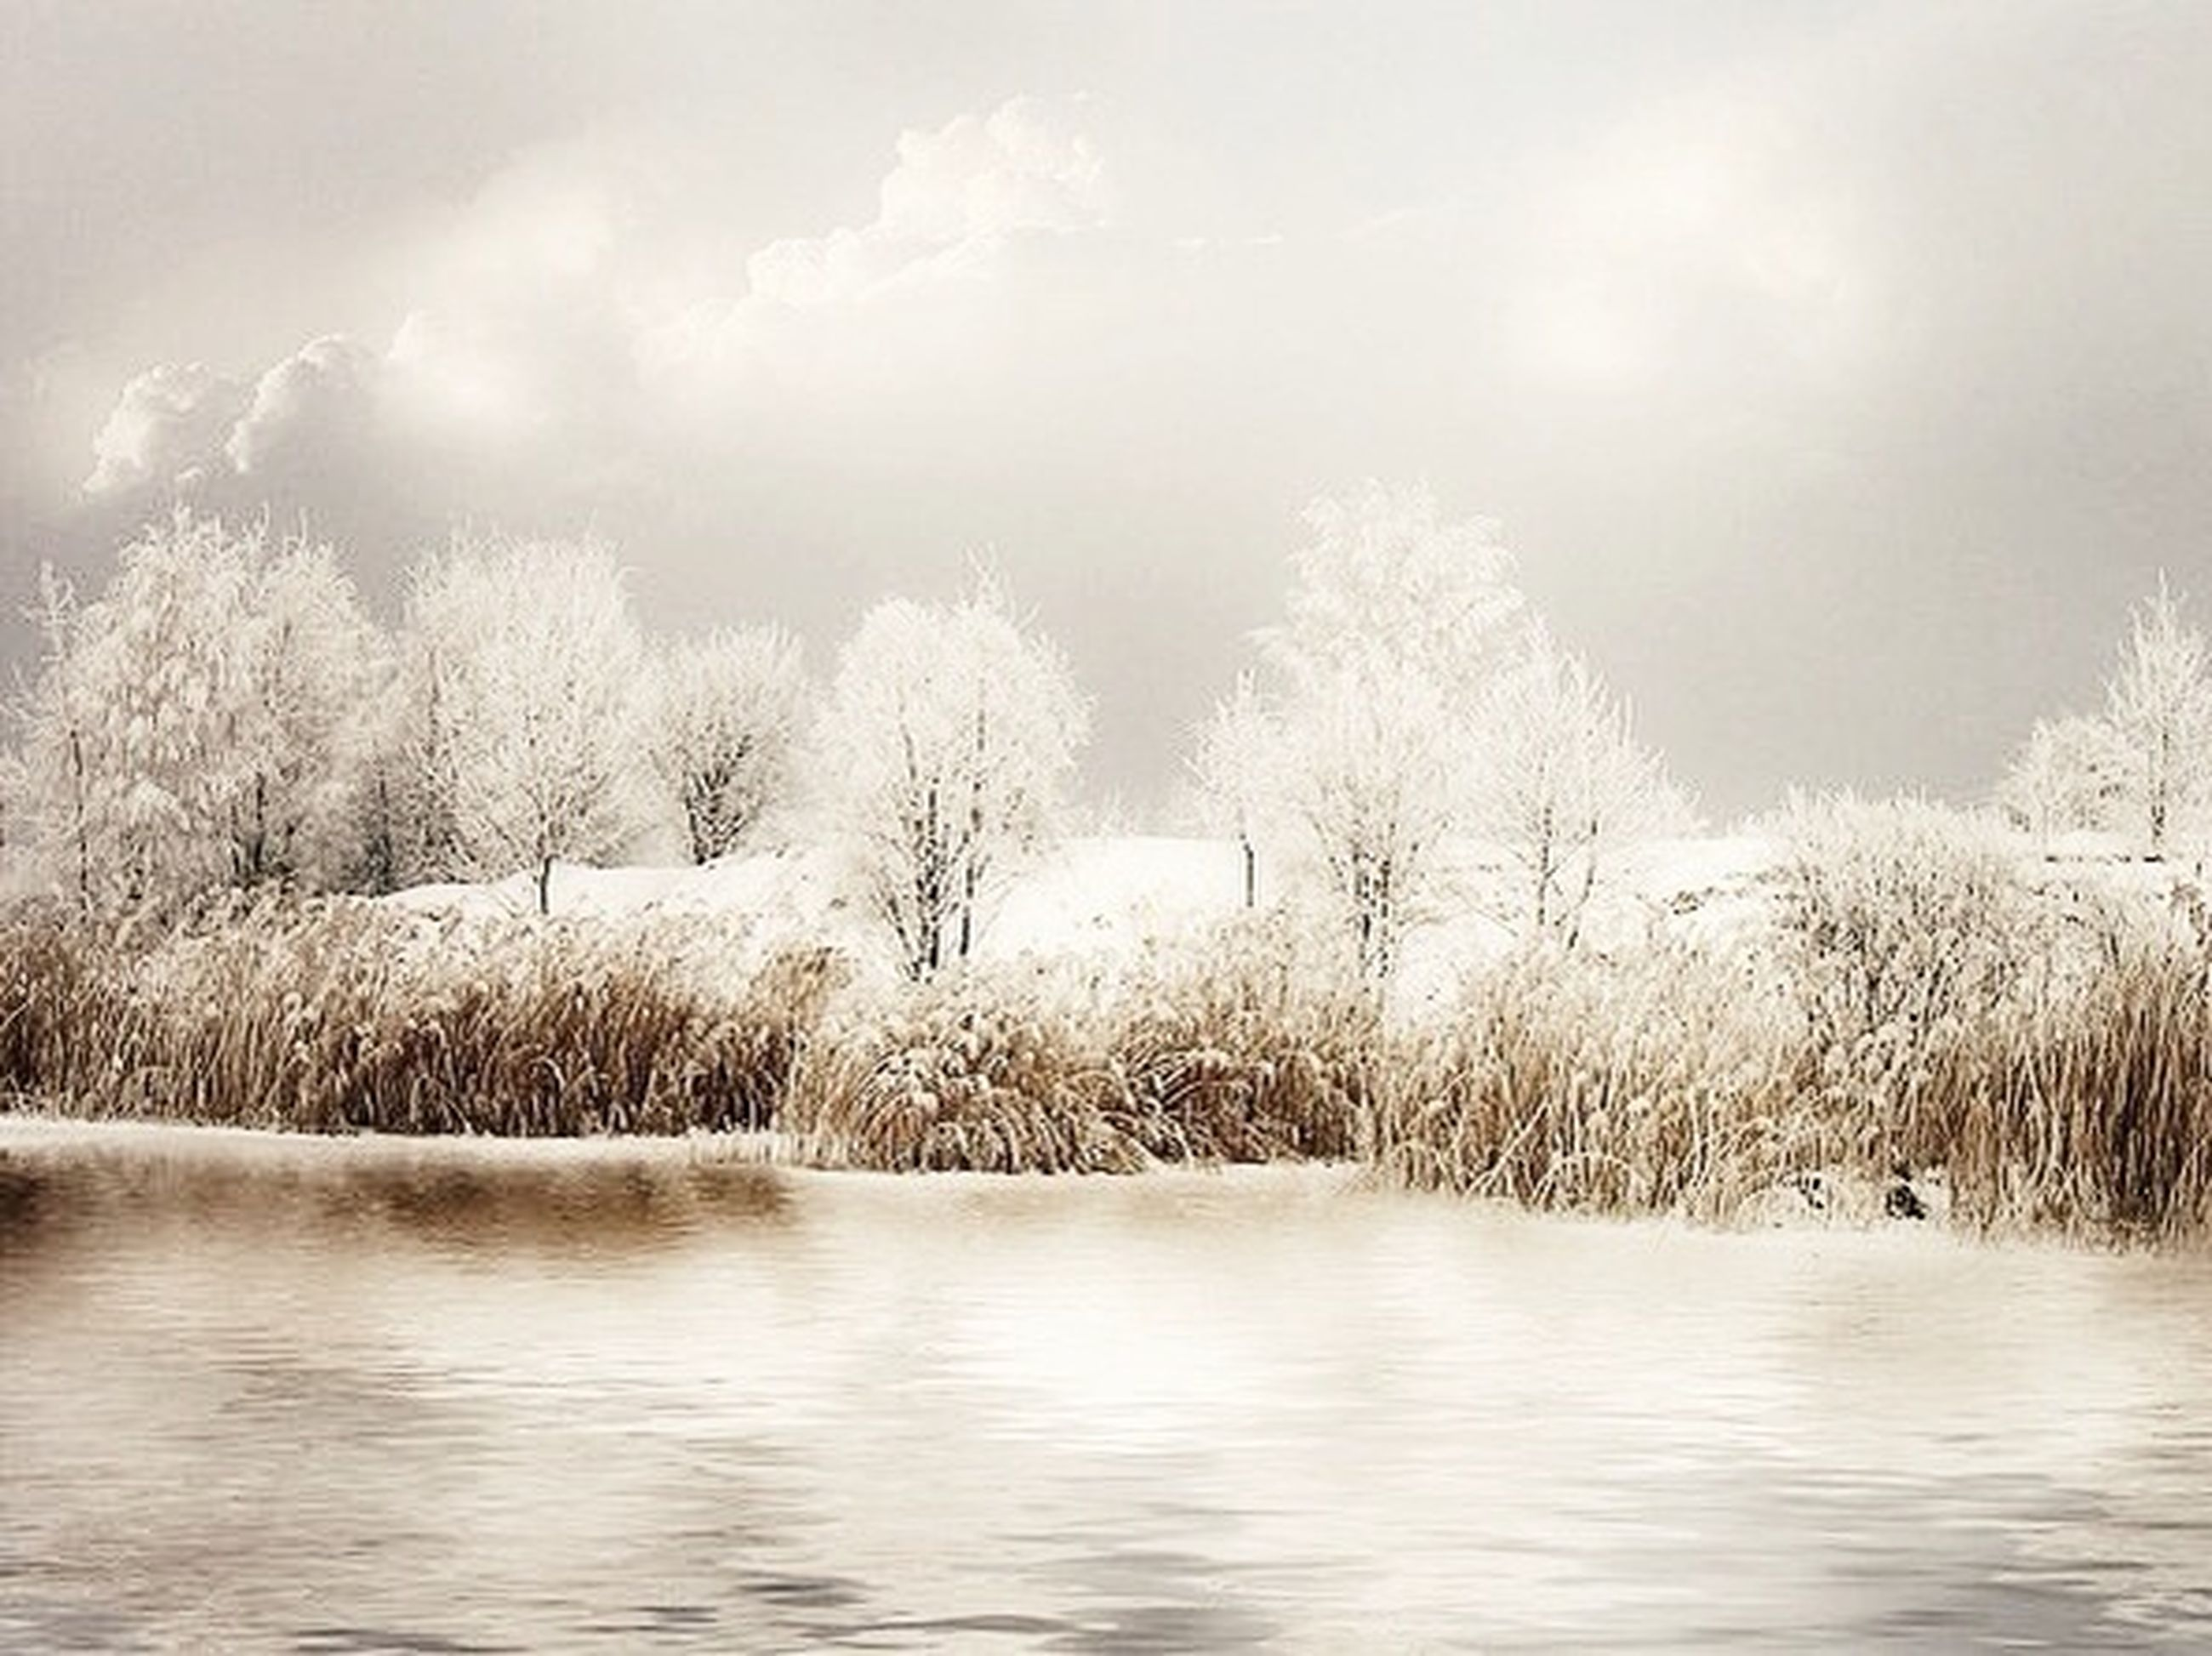 water, tranquility, tranquil scene, waterfront, sky, tree, lake, scenics, nature, beauty in nature, cloud - sky, weather, river, bare tree, winter, cloudy, cold temperature, non-urban scene, snow, day